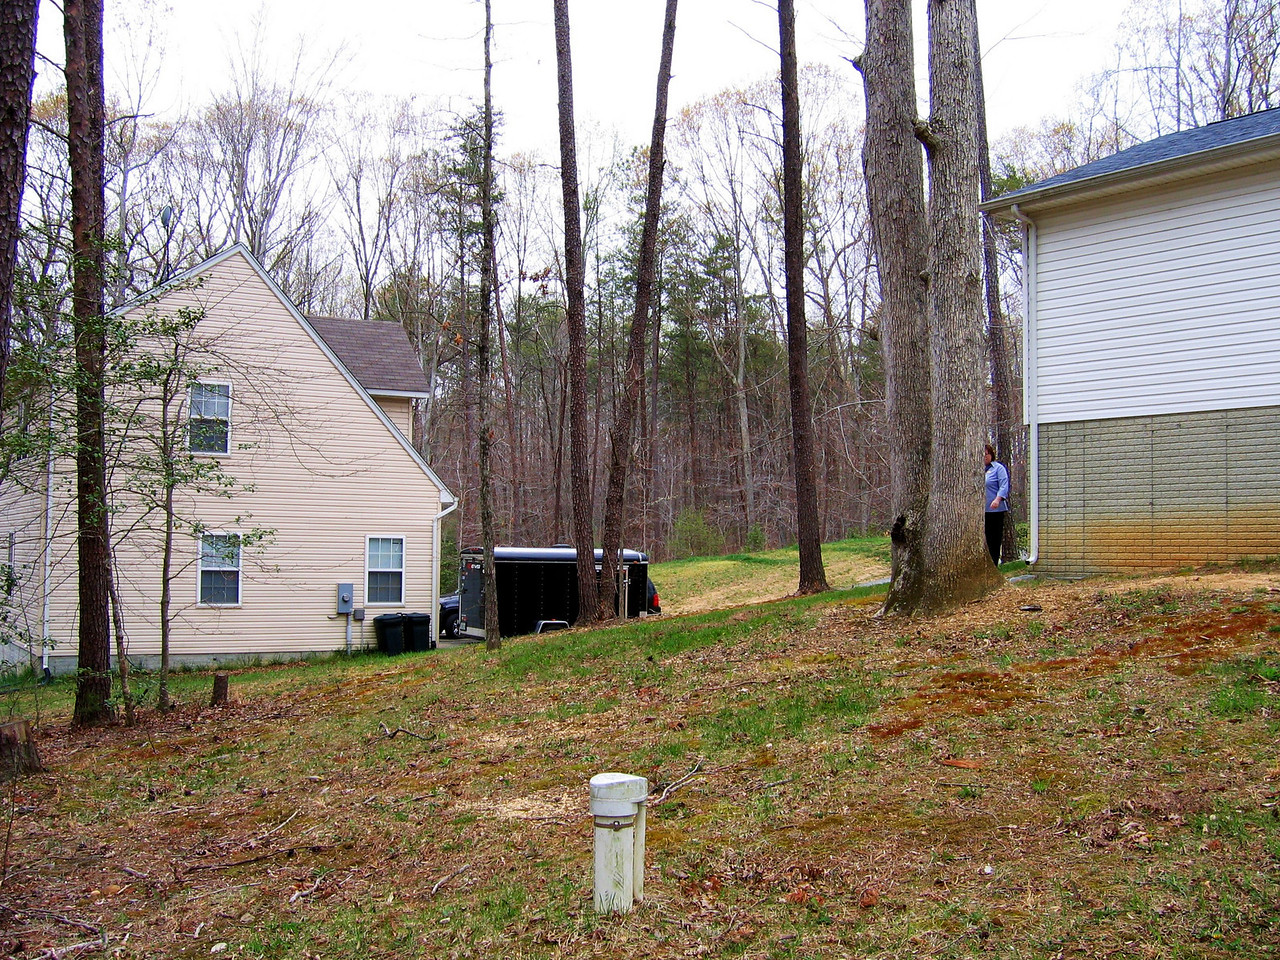 A view of the neighbor's house and the septic access tube in the foreground.